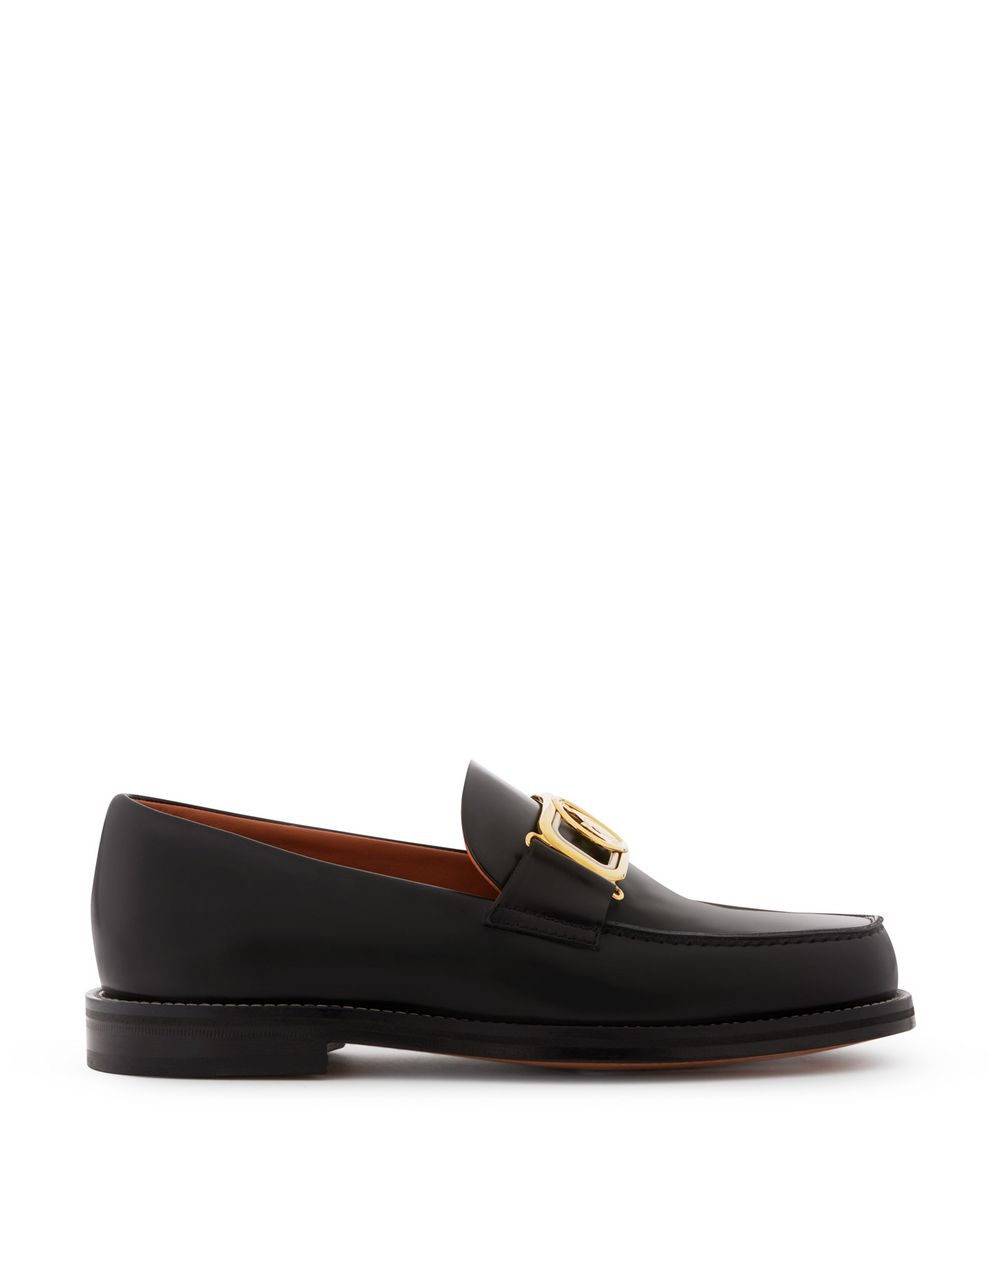 SWAN LOAFERS IN BRUSHED LEATHER - Lanvin